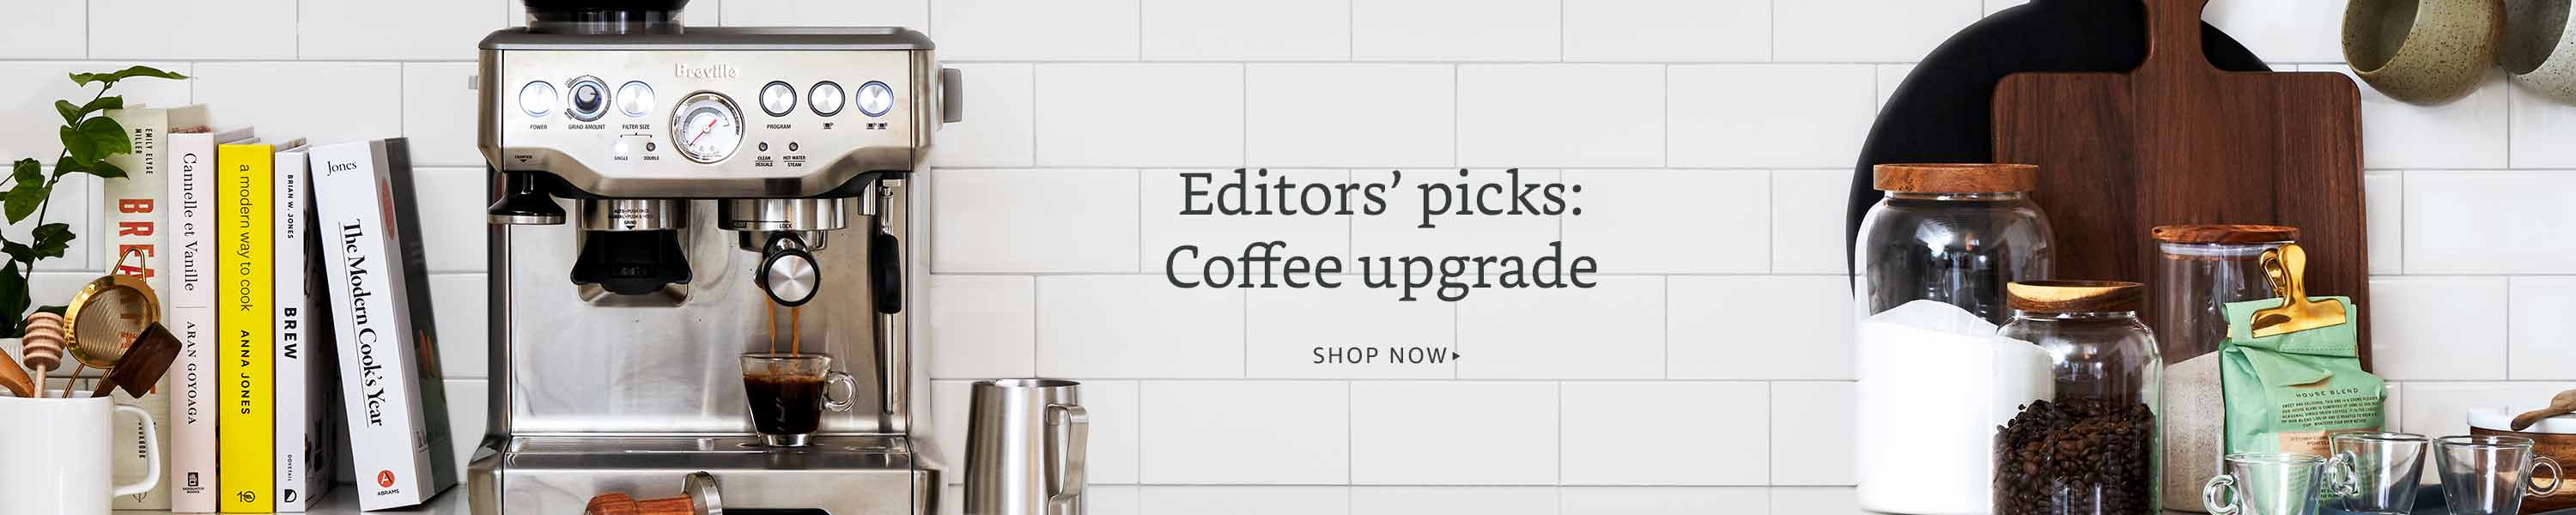 Editors' pick: Coffee upgrade